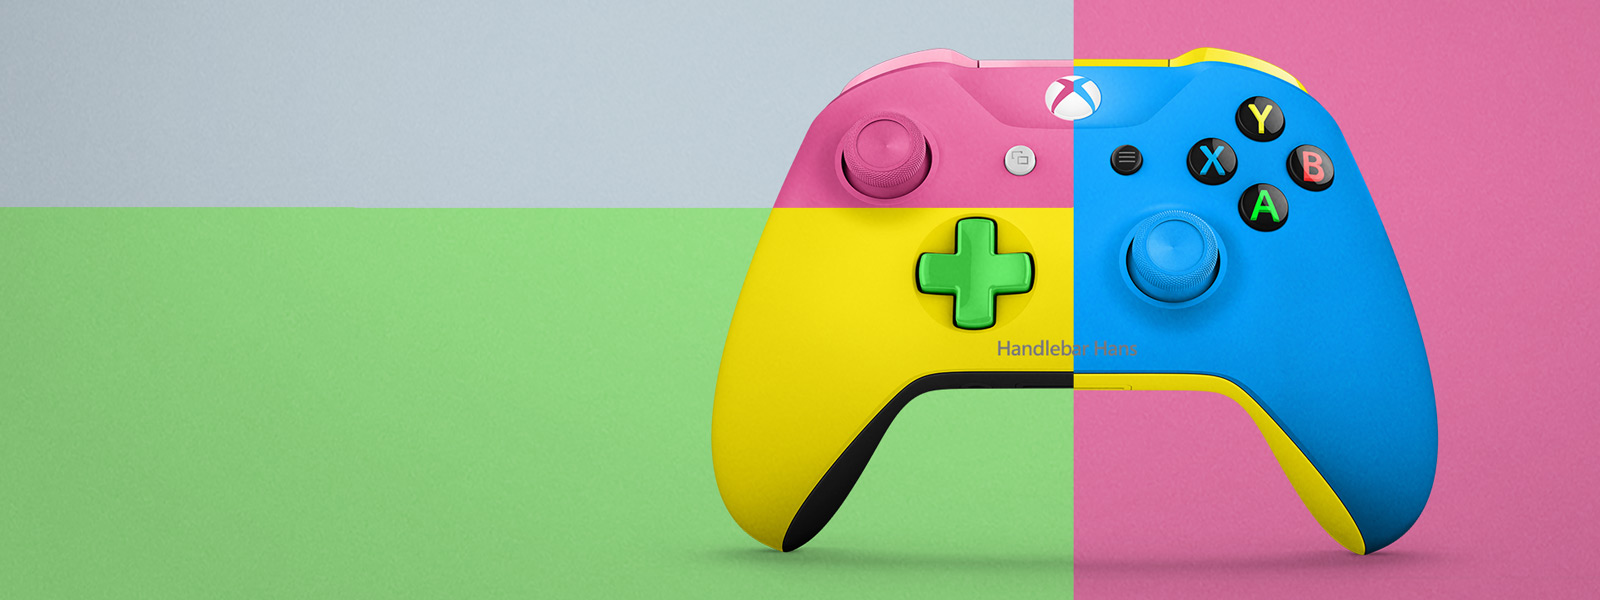 Good Pastel Xbox Design Lab Controller In Mondrian Style Engraved With Handlebar  Hans